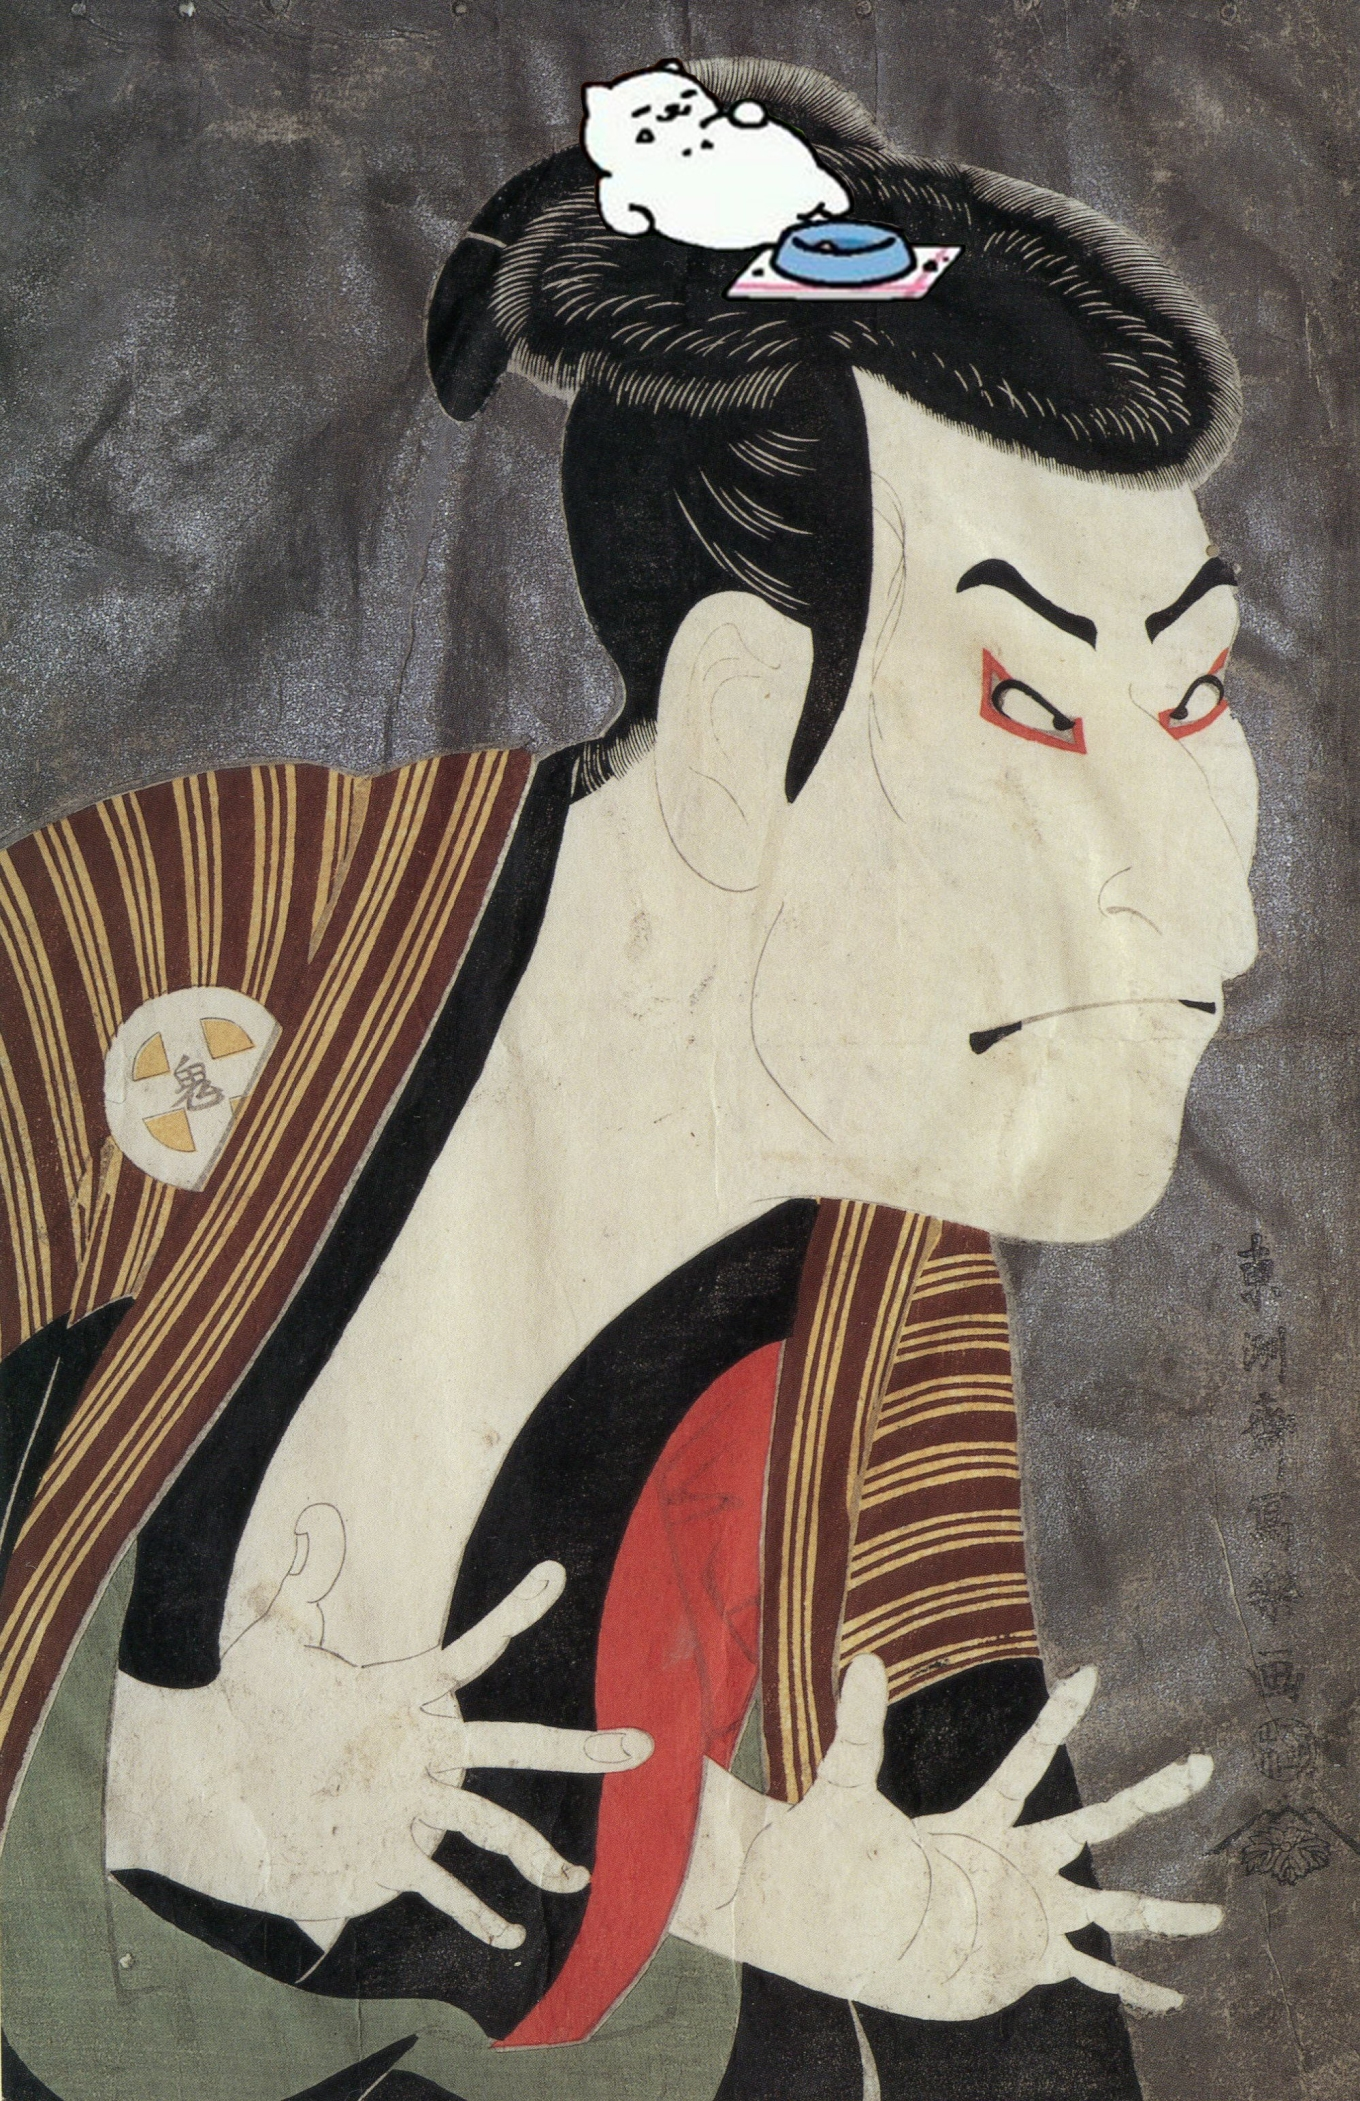 Think how much MORE famous the kabuki actor Otani Oniji III would have been if assisted by Tubbs